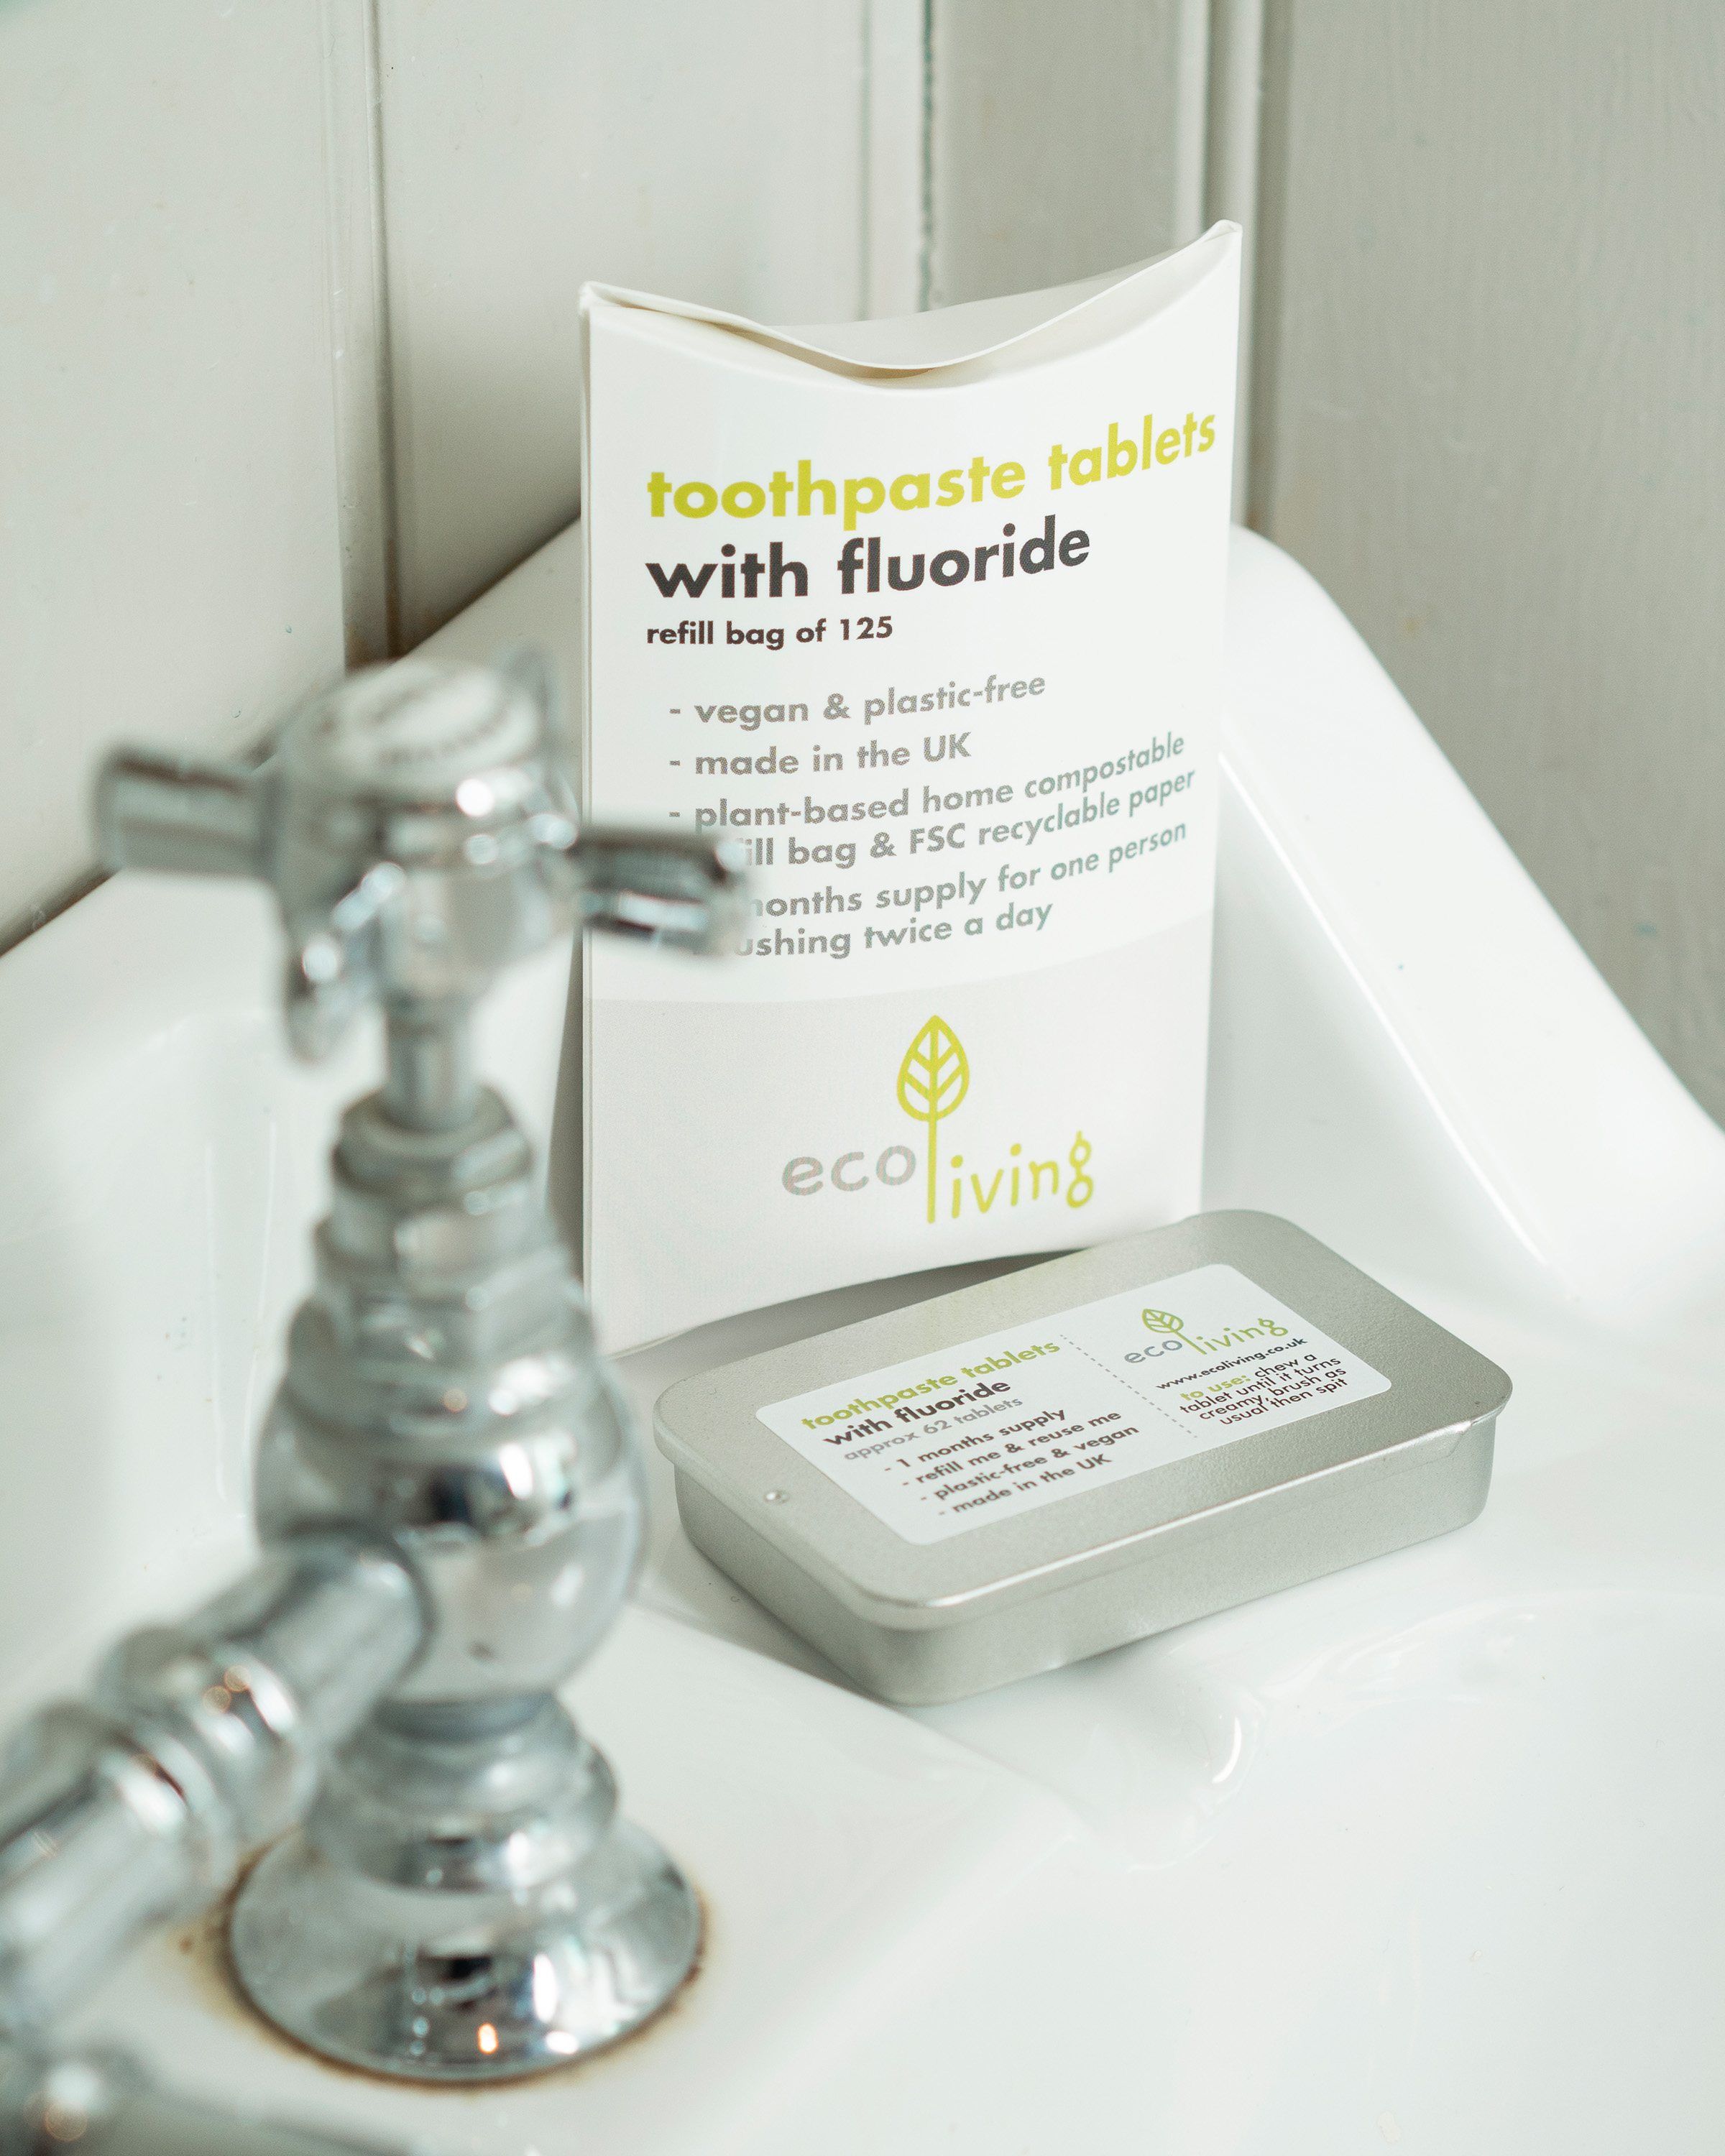 EcoLiving Toothpaste Tablet Refill Pack (with Flouride)